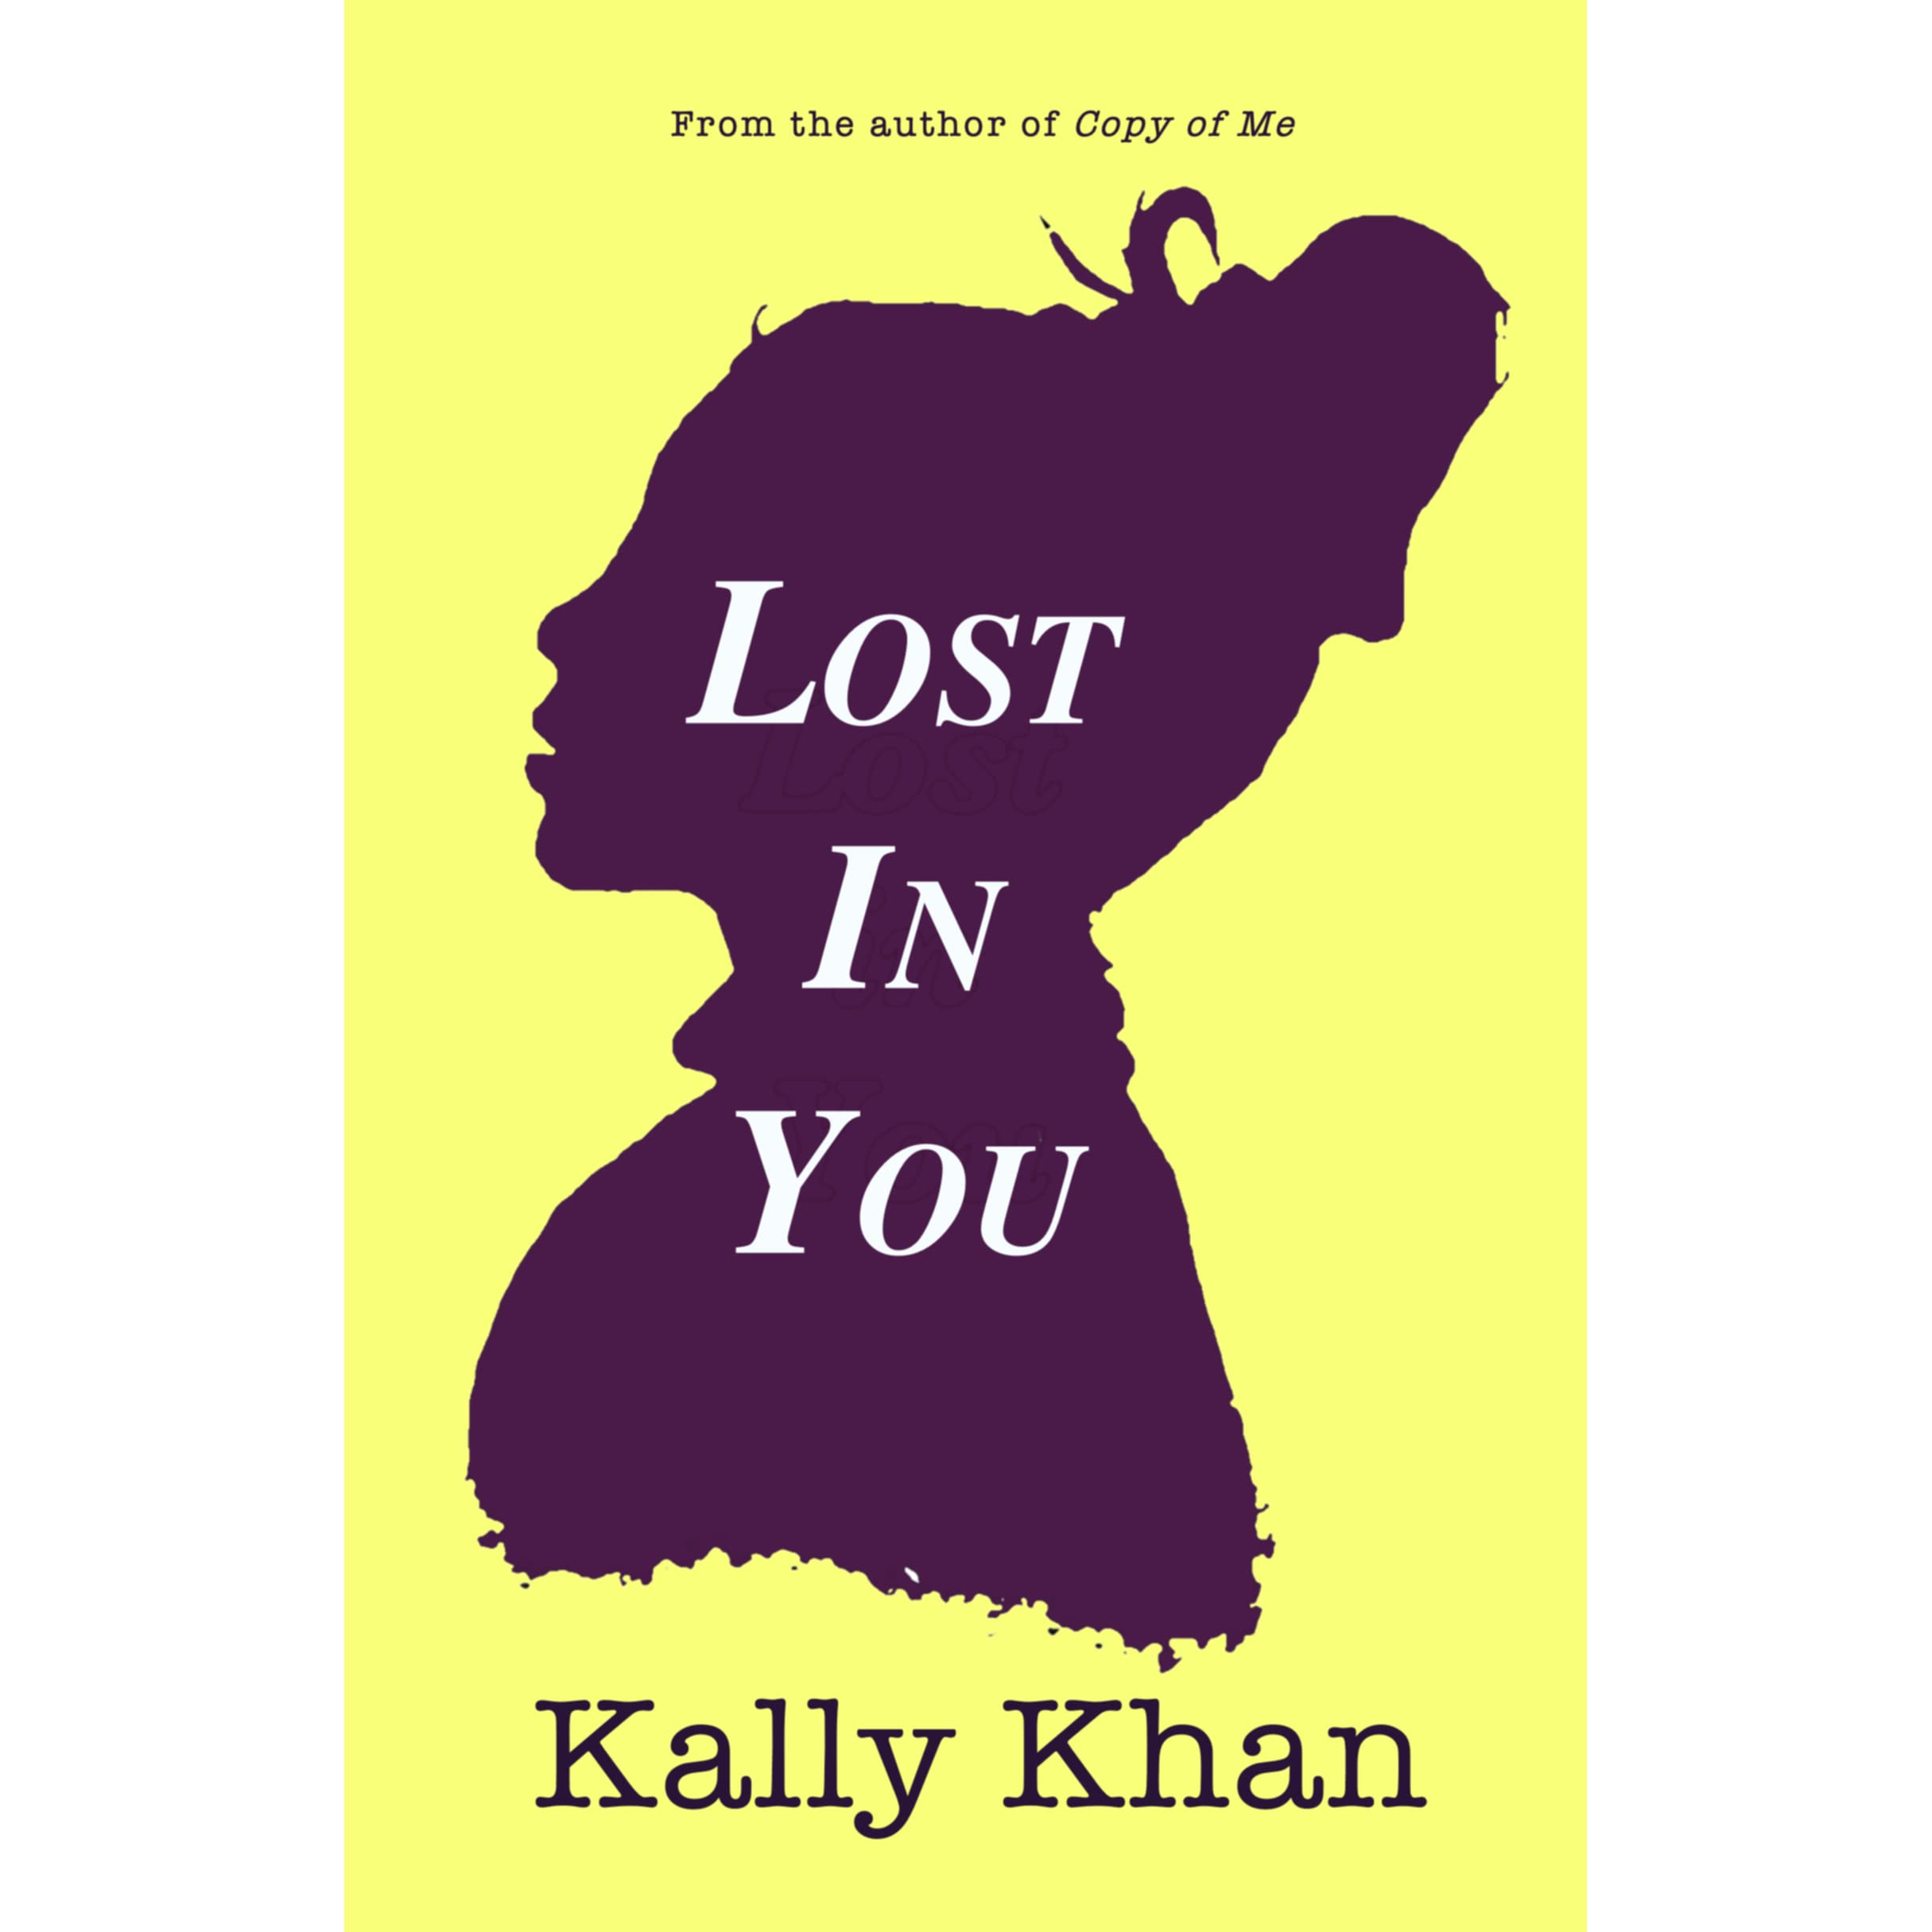 Lost in You by Kally Khan